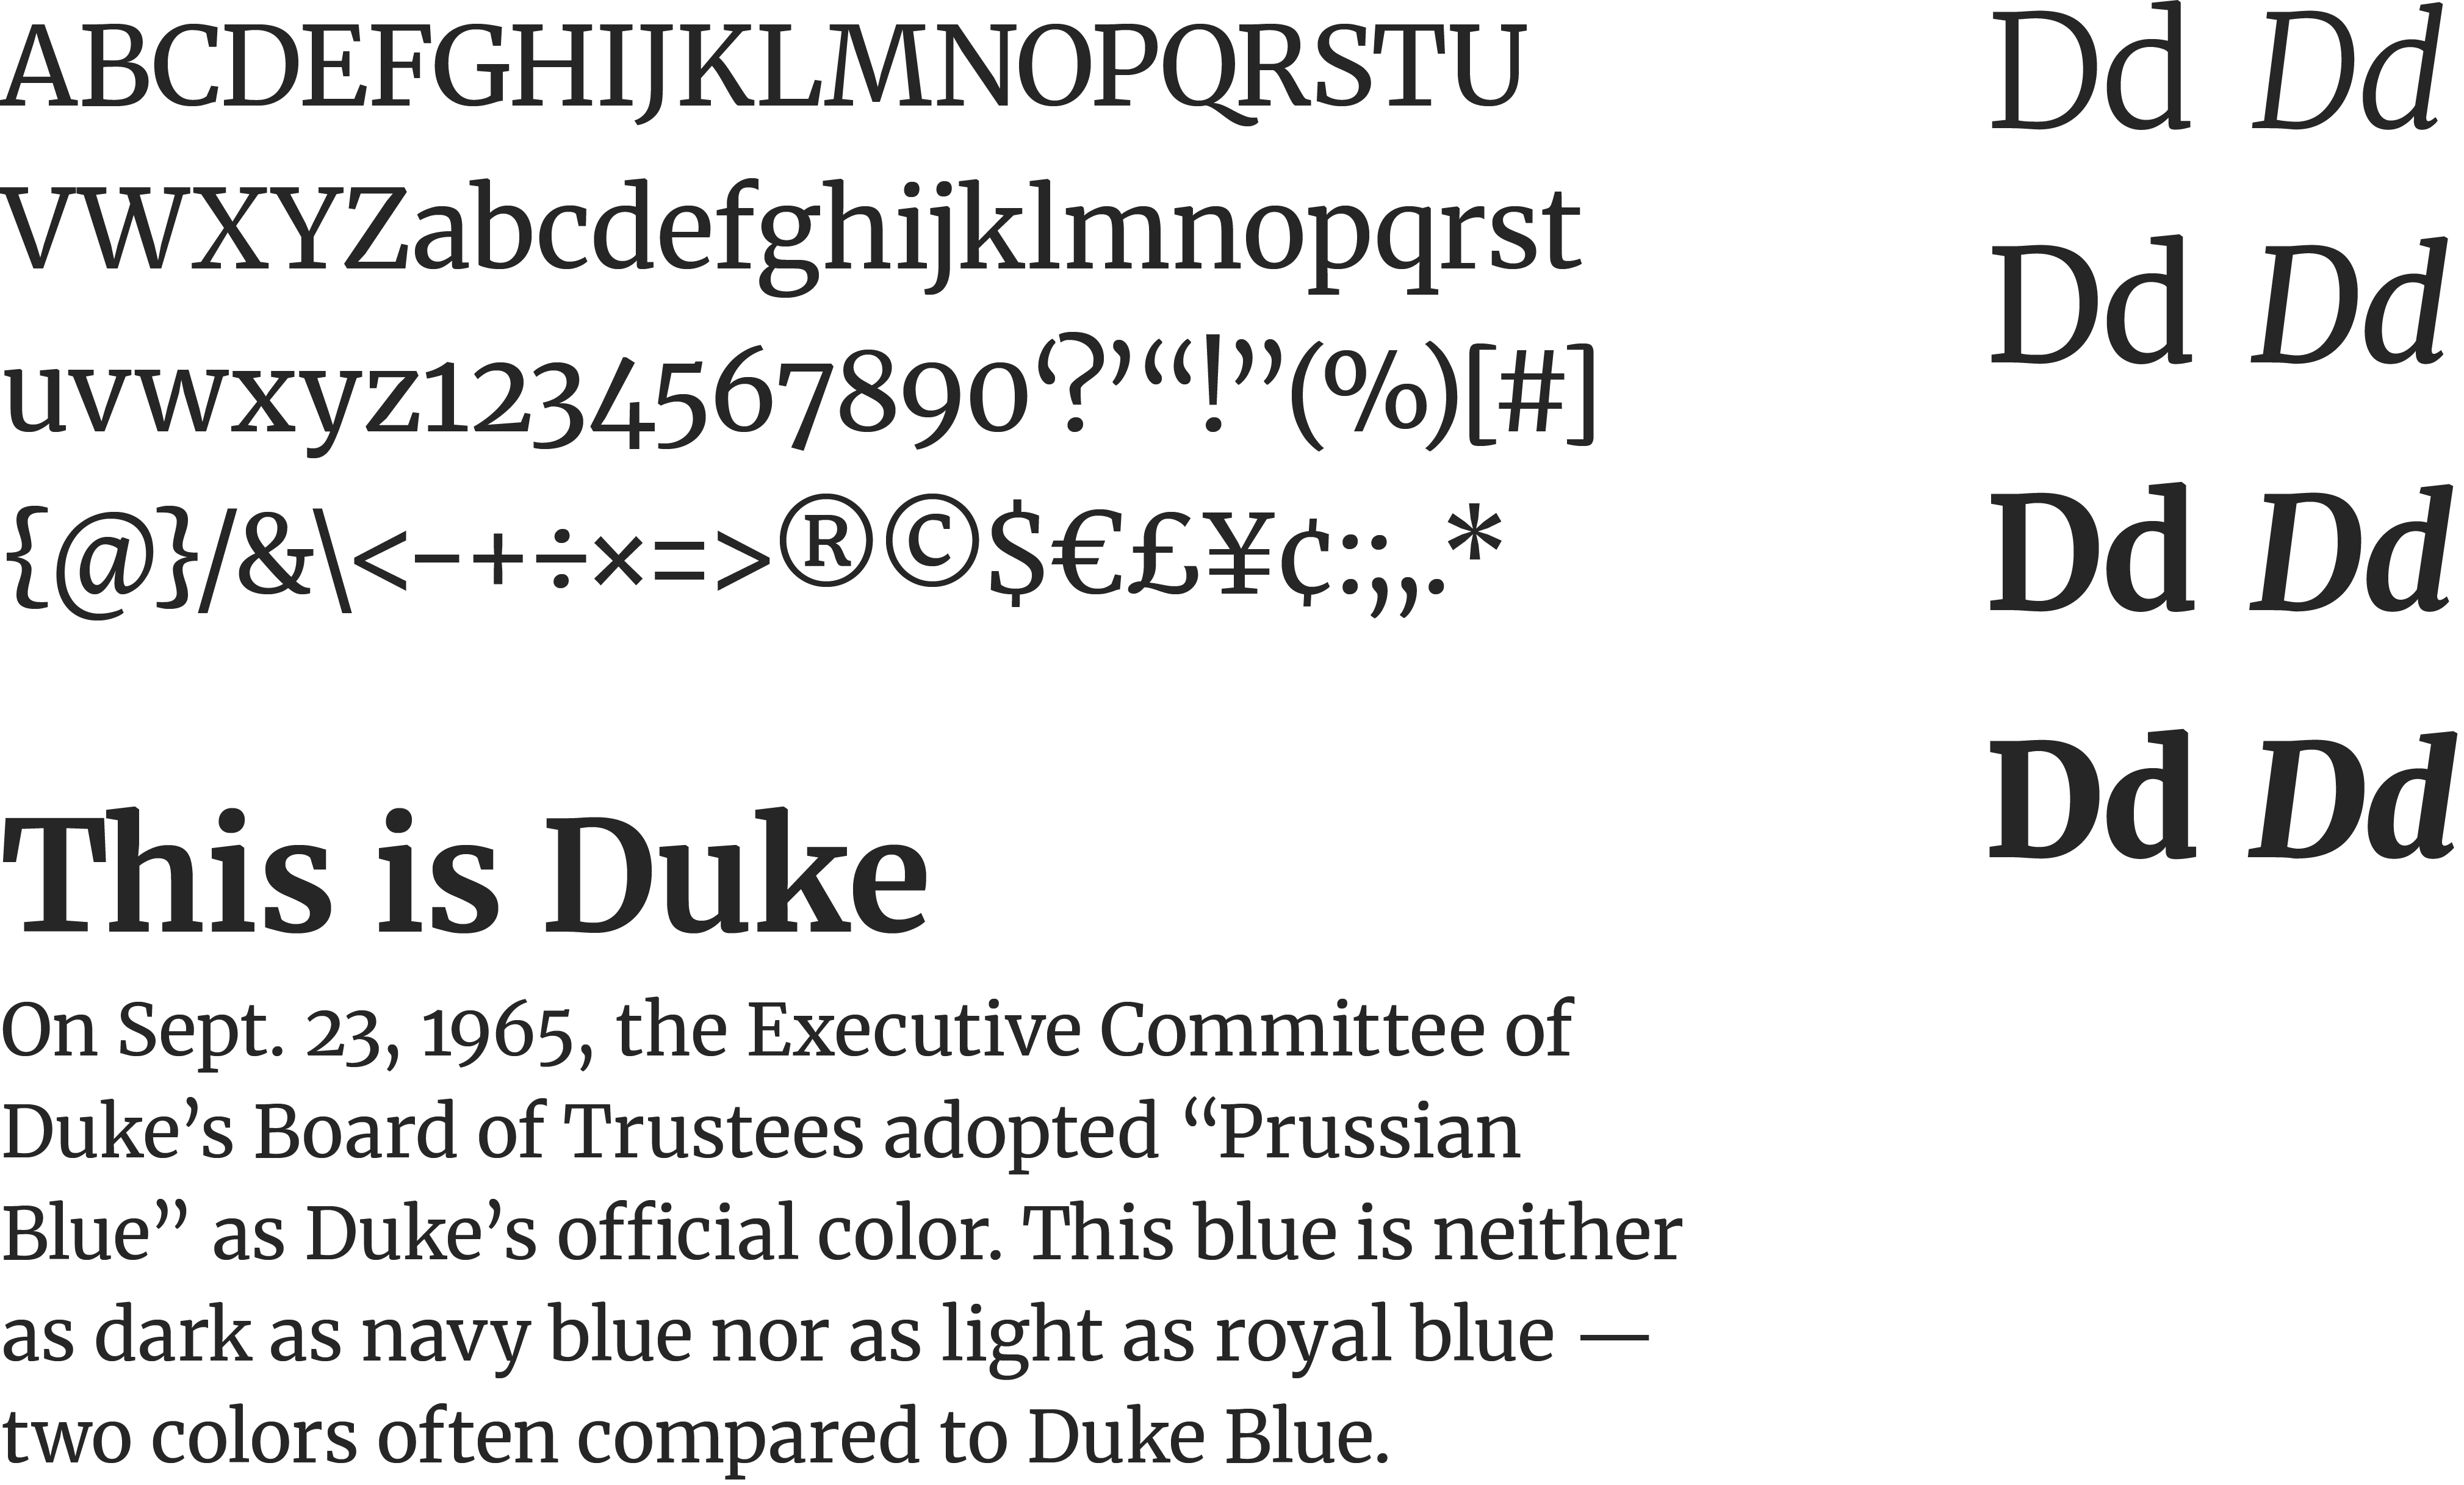 A specimen of the Merriweather, a contemporary serif typeface. Included are a list of English characters, the font weights & styles and a sample paragraph of text rendered in the typeface.